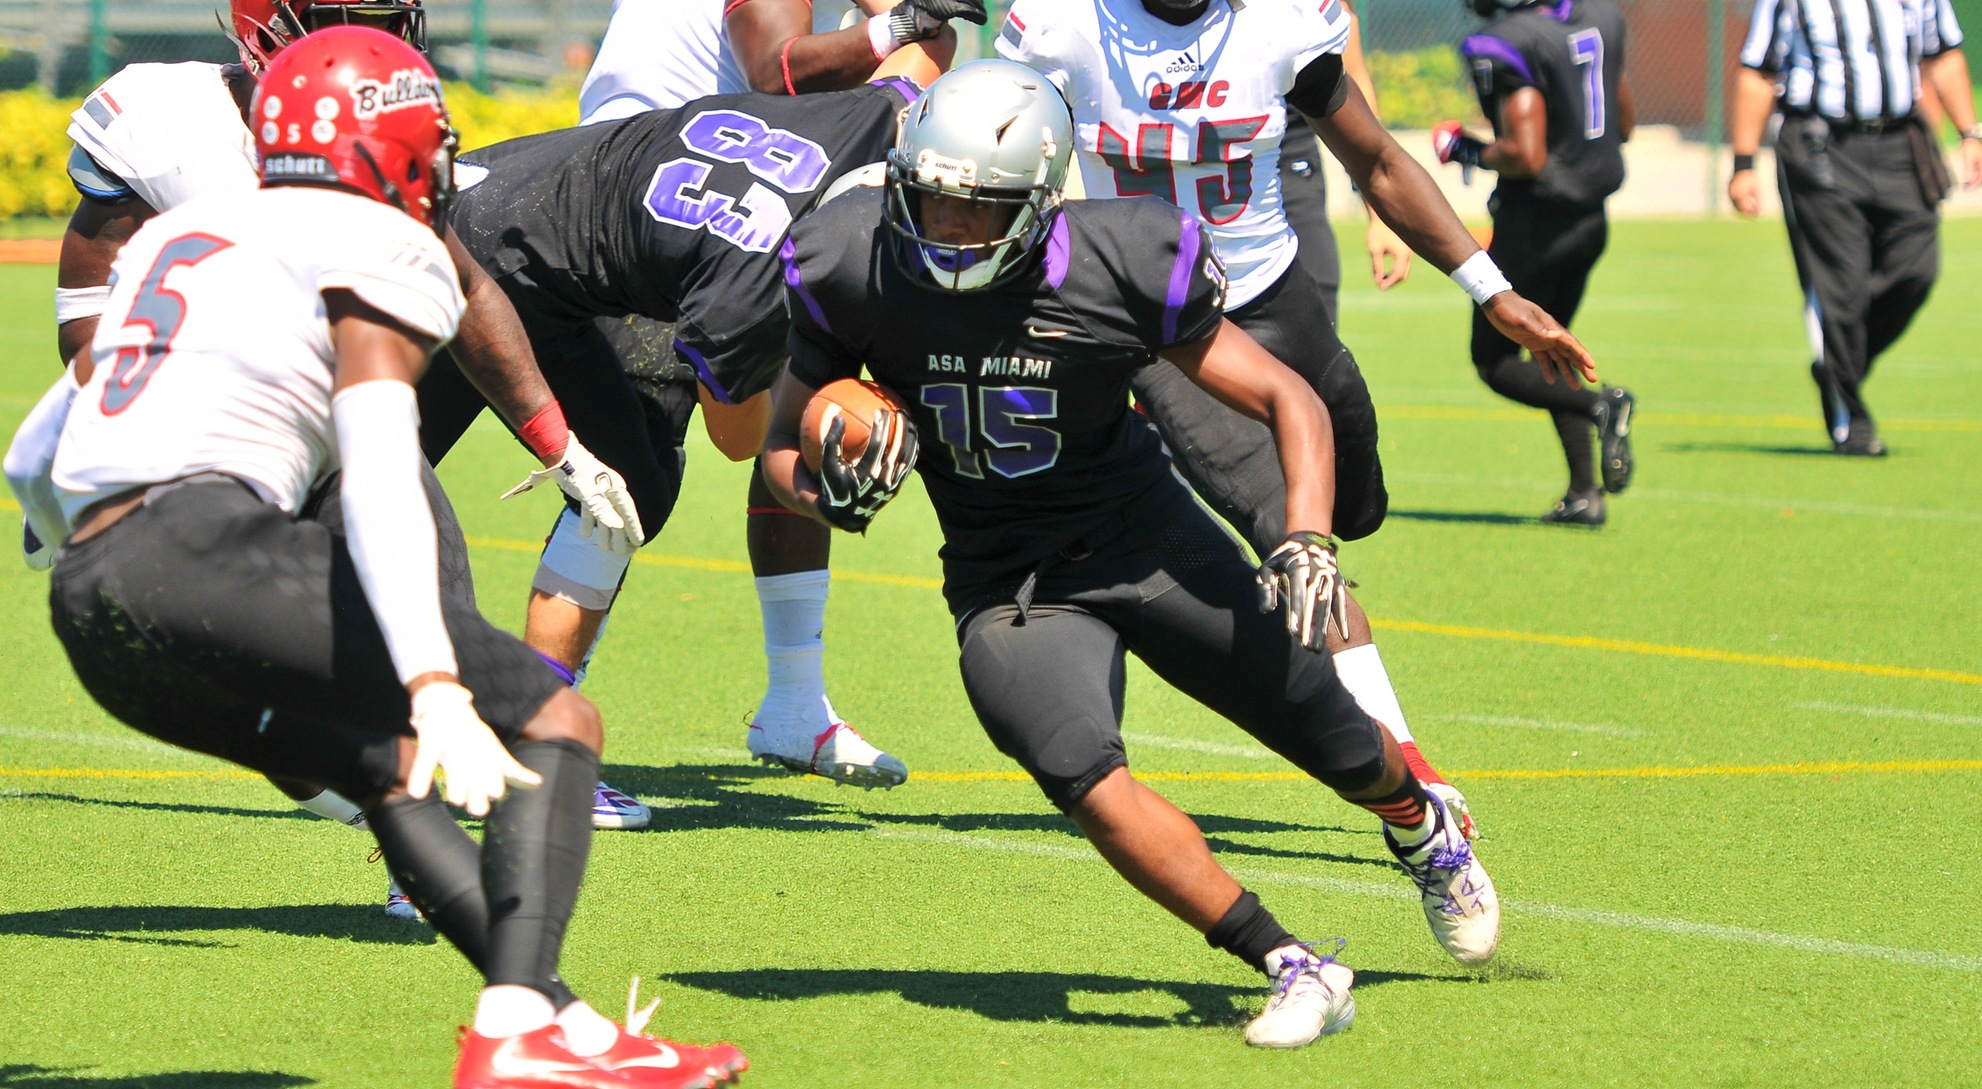 ASA Miami Comes Up Short Against Georgia Military College